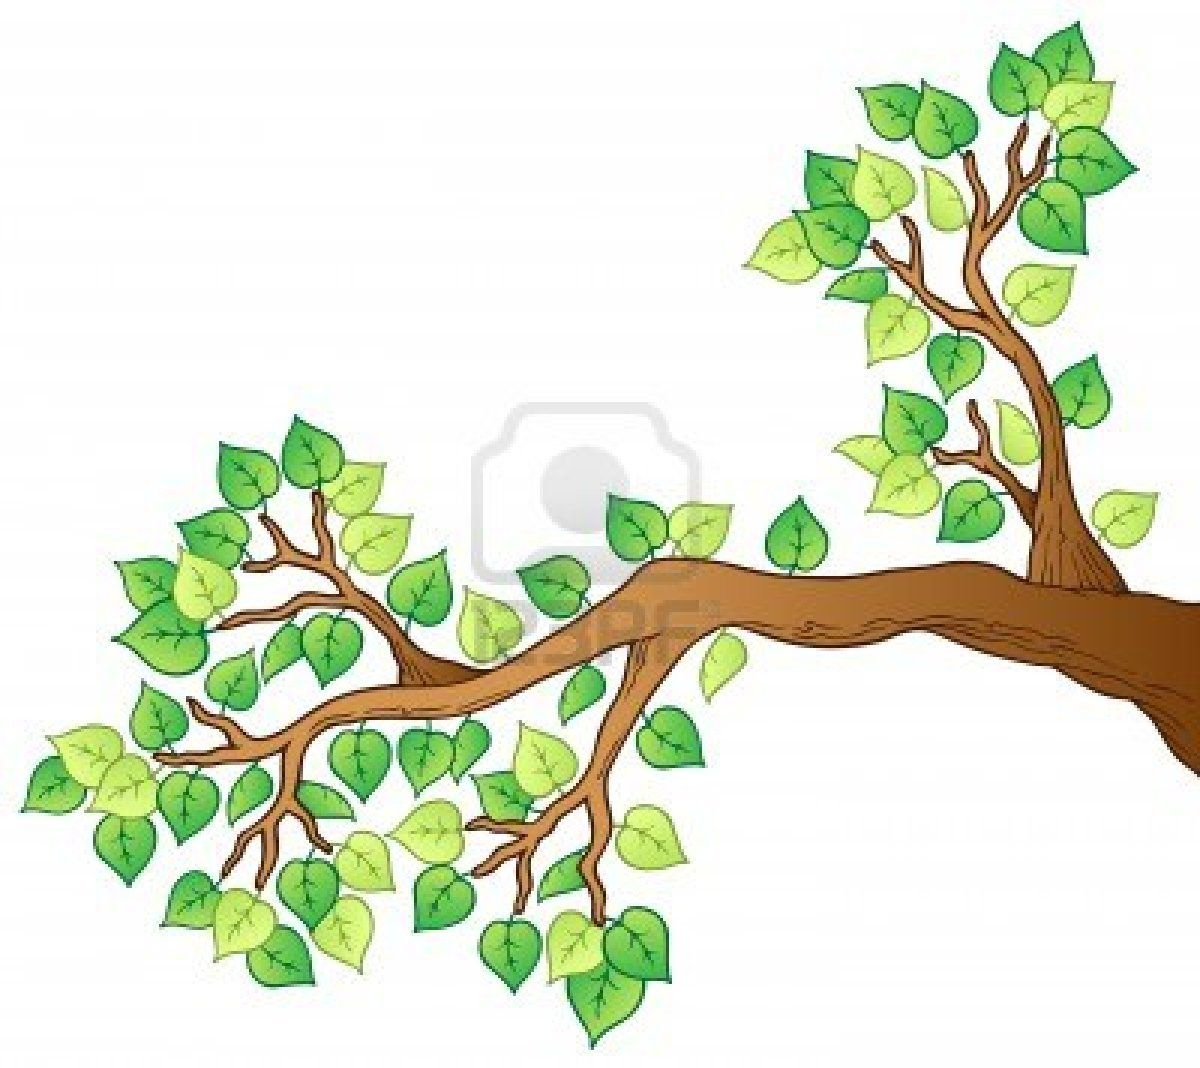 How to draw a cartoon tree with branches images - Ramas de arboles ...